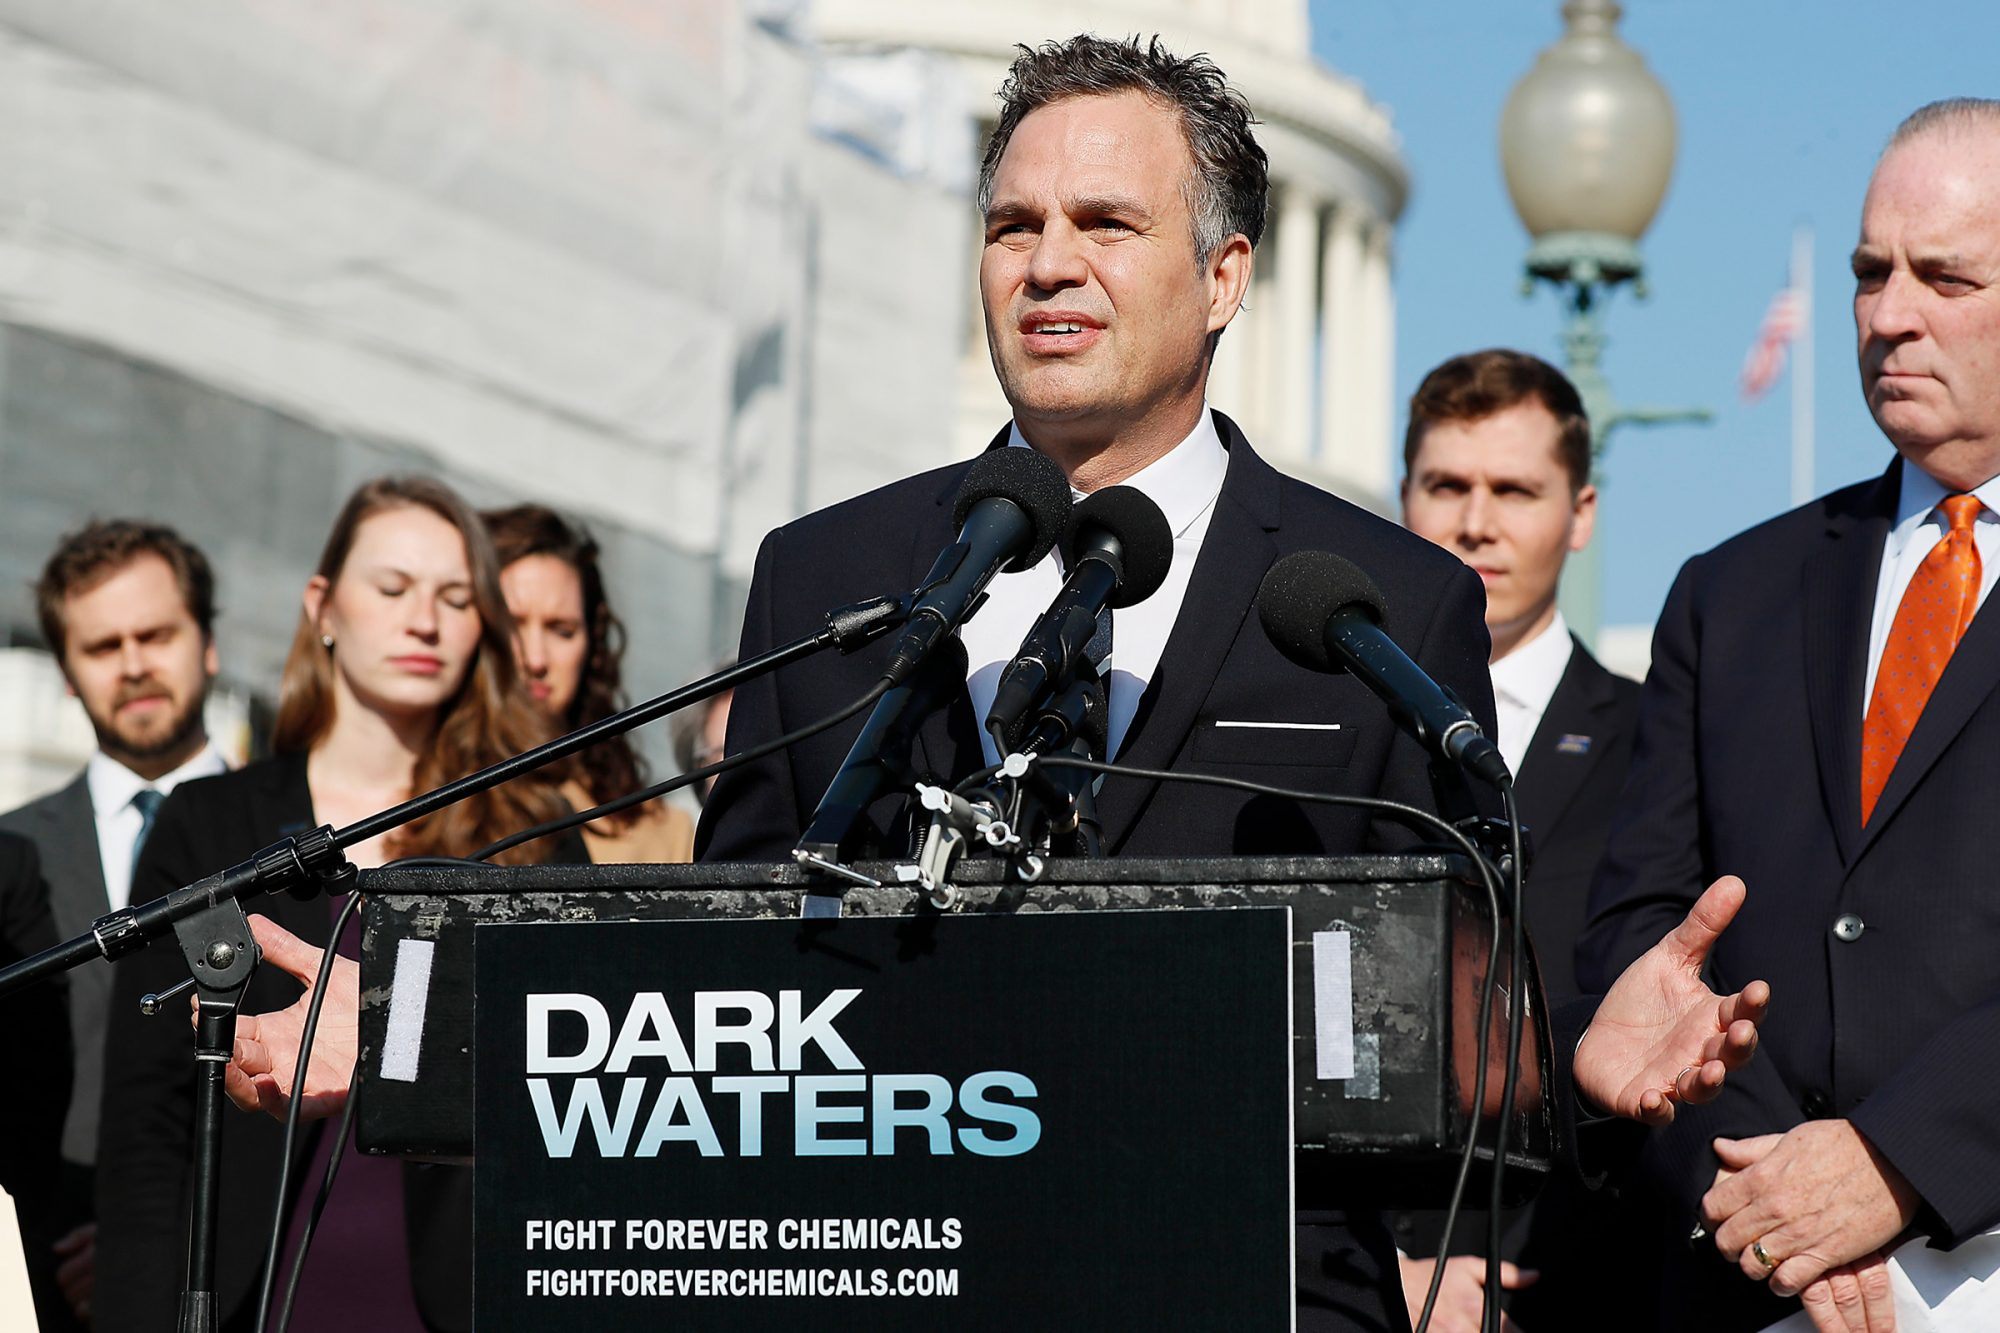 Mark Ruffalo speaks at the Fight Forever Chemicals Campaign kick off event on Capitol Hill on November 19, 2019 in Washington, DC.